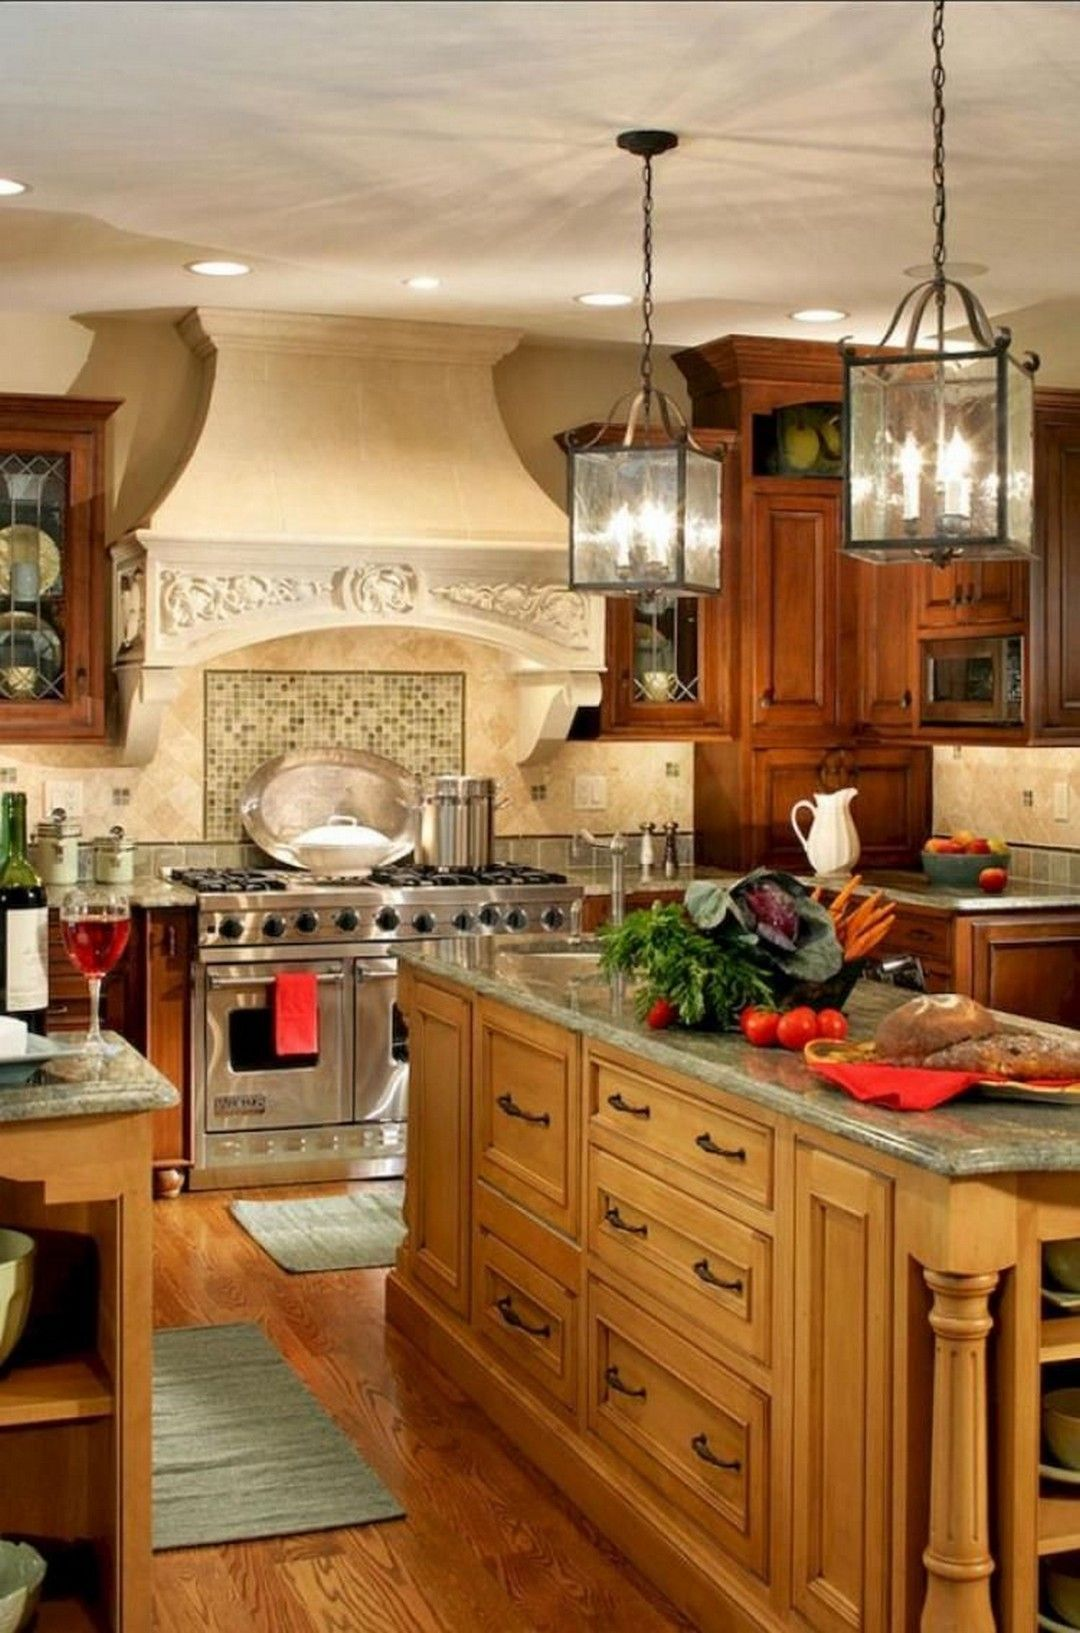 country kitchen ideas oldy cute and elegant vintage in 2020 french country decorating on kitchen remodel french country id=36506